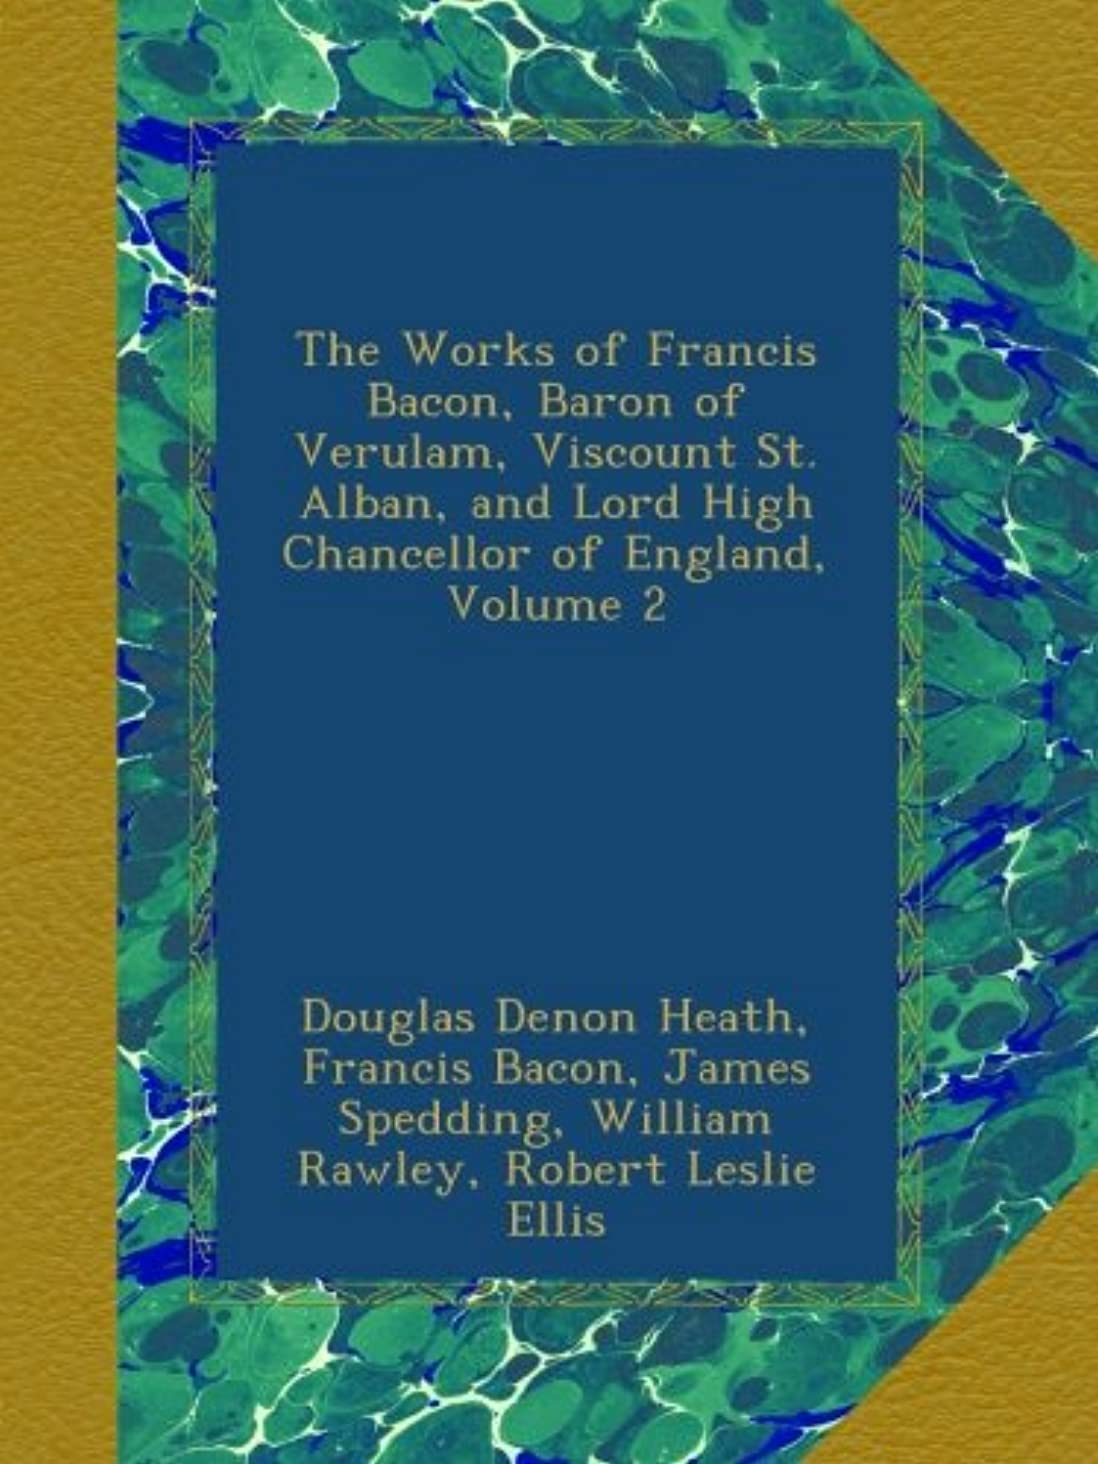 サーマル昆虫研究The Works of Francis Bacon, Baron of Verulam, Viscount St. Alban, and Lord High Chancellor of England, Volume 2